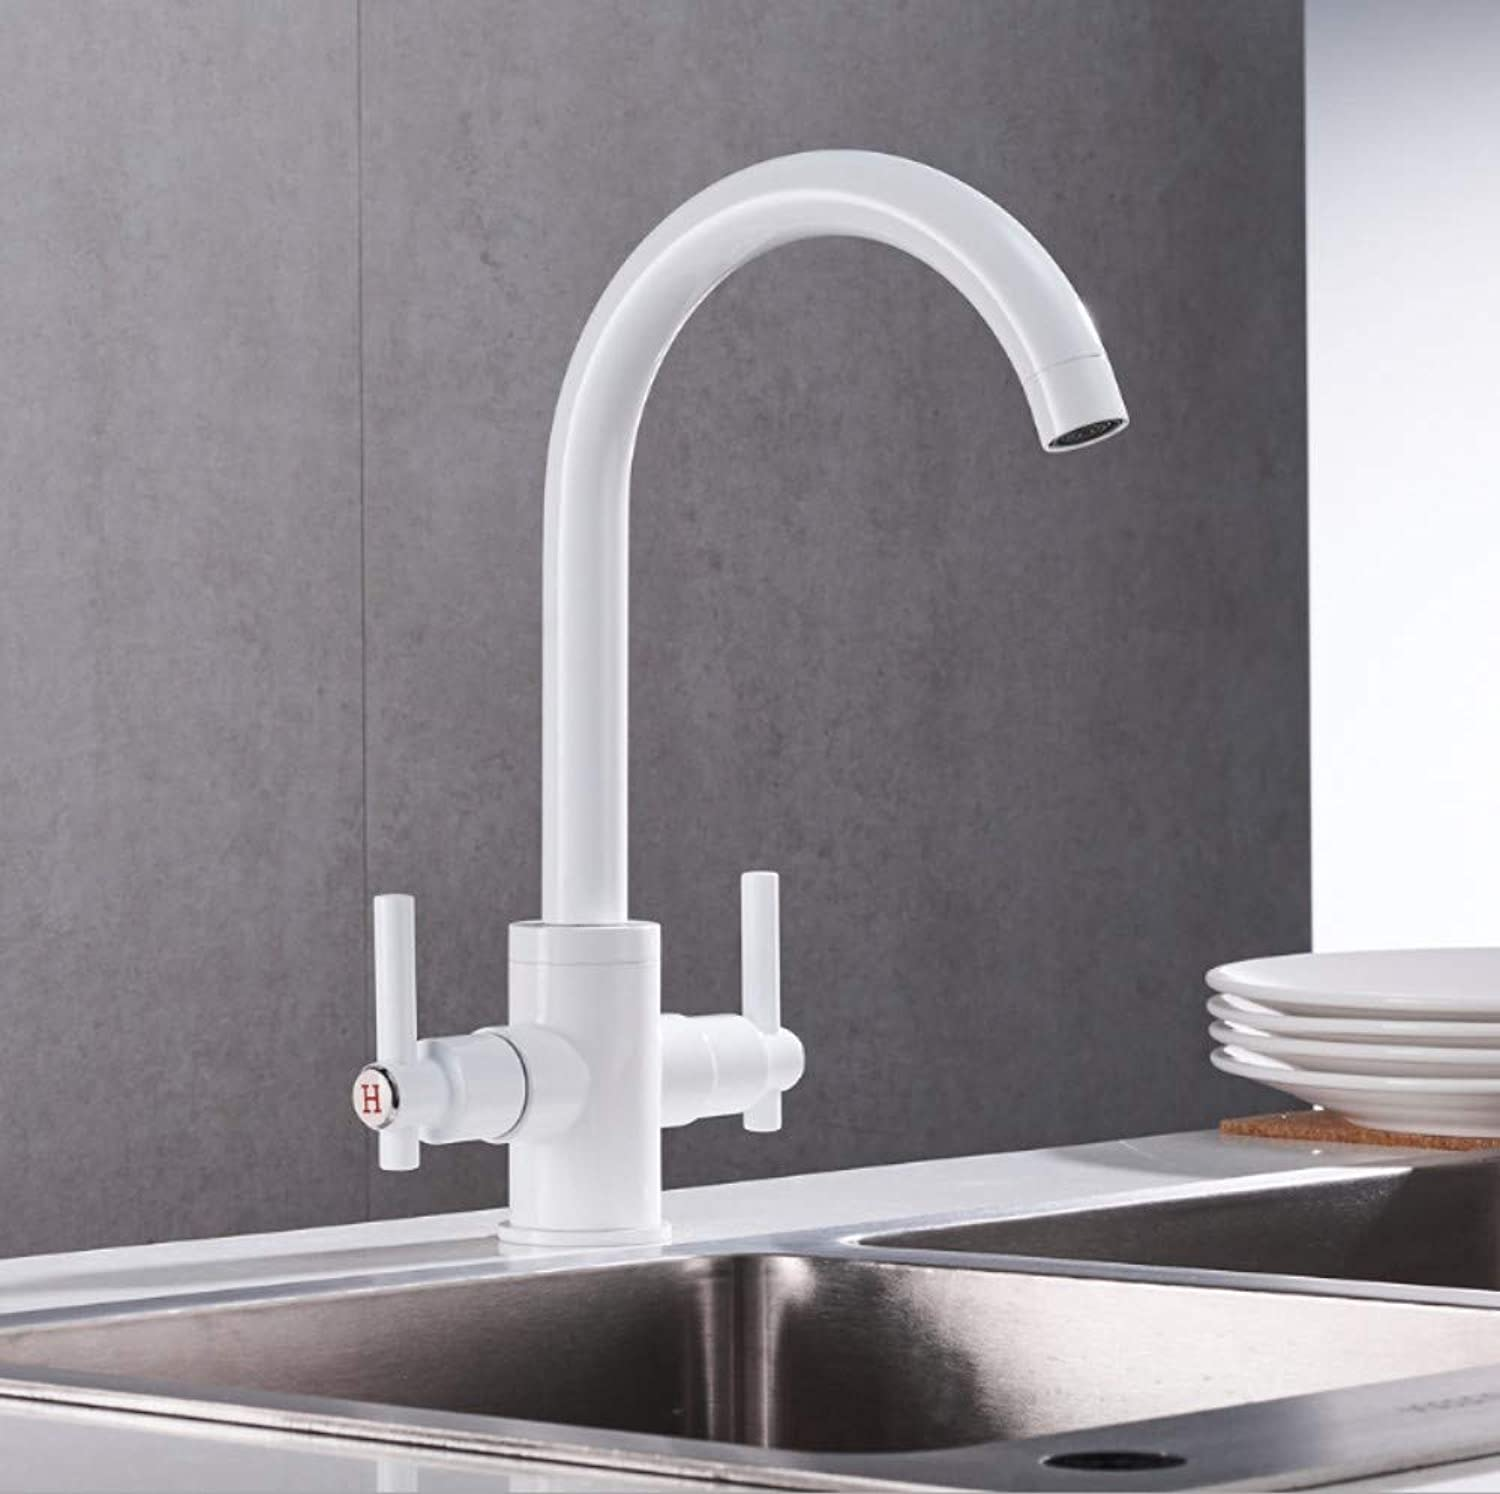 Bathroom Sink Basin Lever Mixer Tap Modern Kitchen Sink Single Hole Double Handle Hot and Cold Water Faucet Brass White Paint Can redate Mixing Faucet